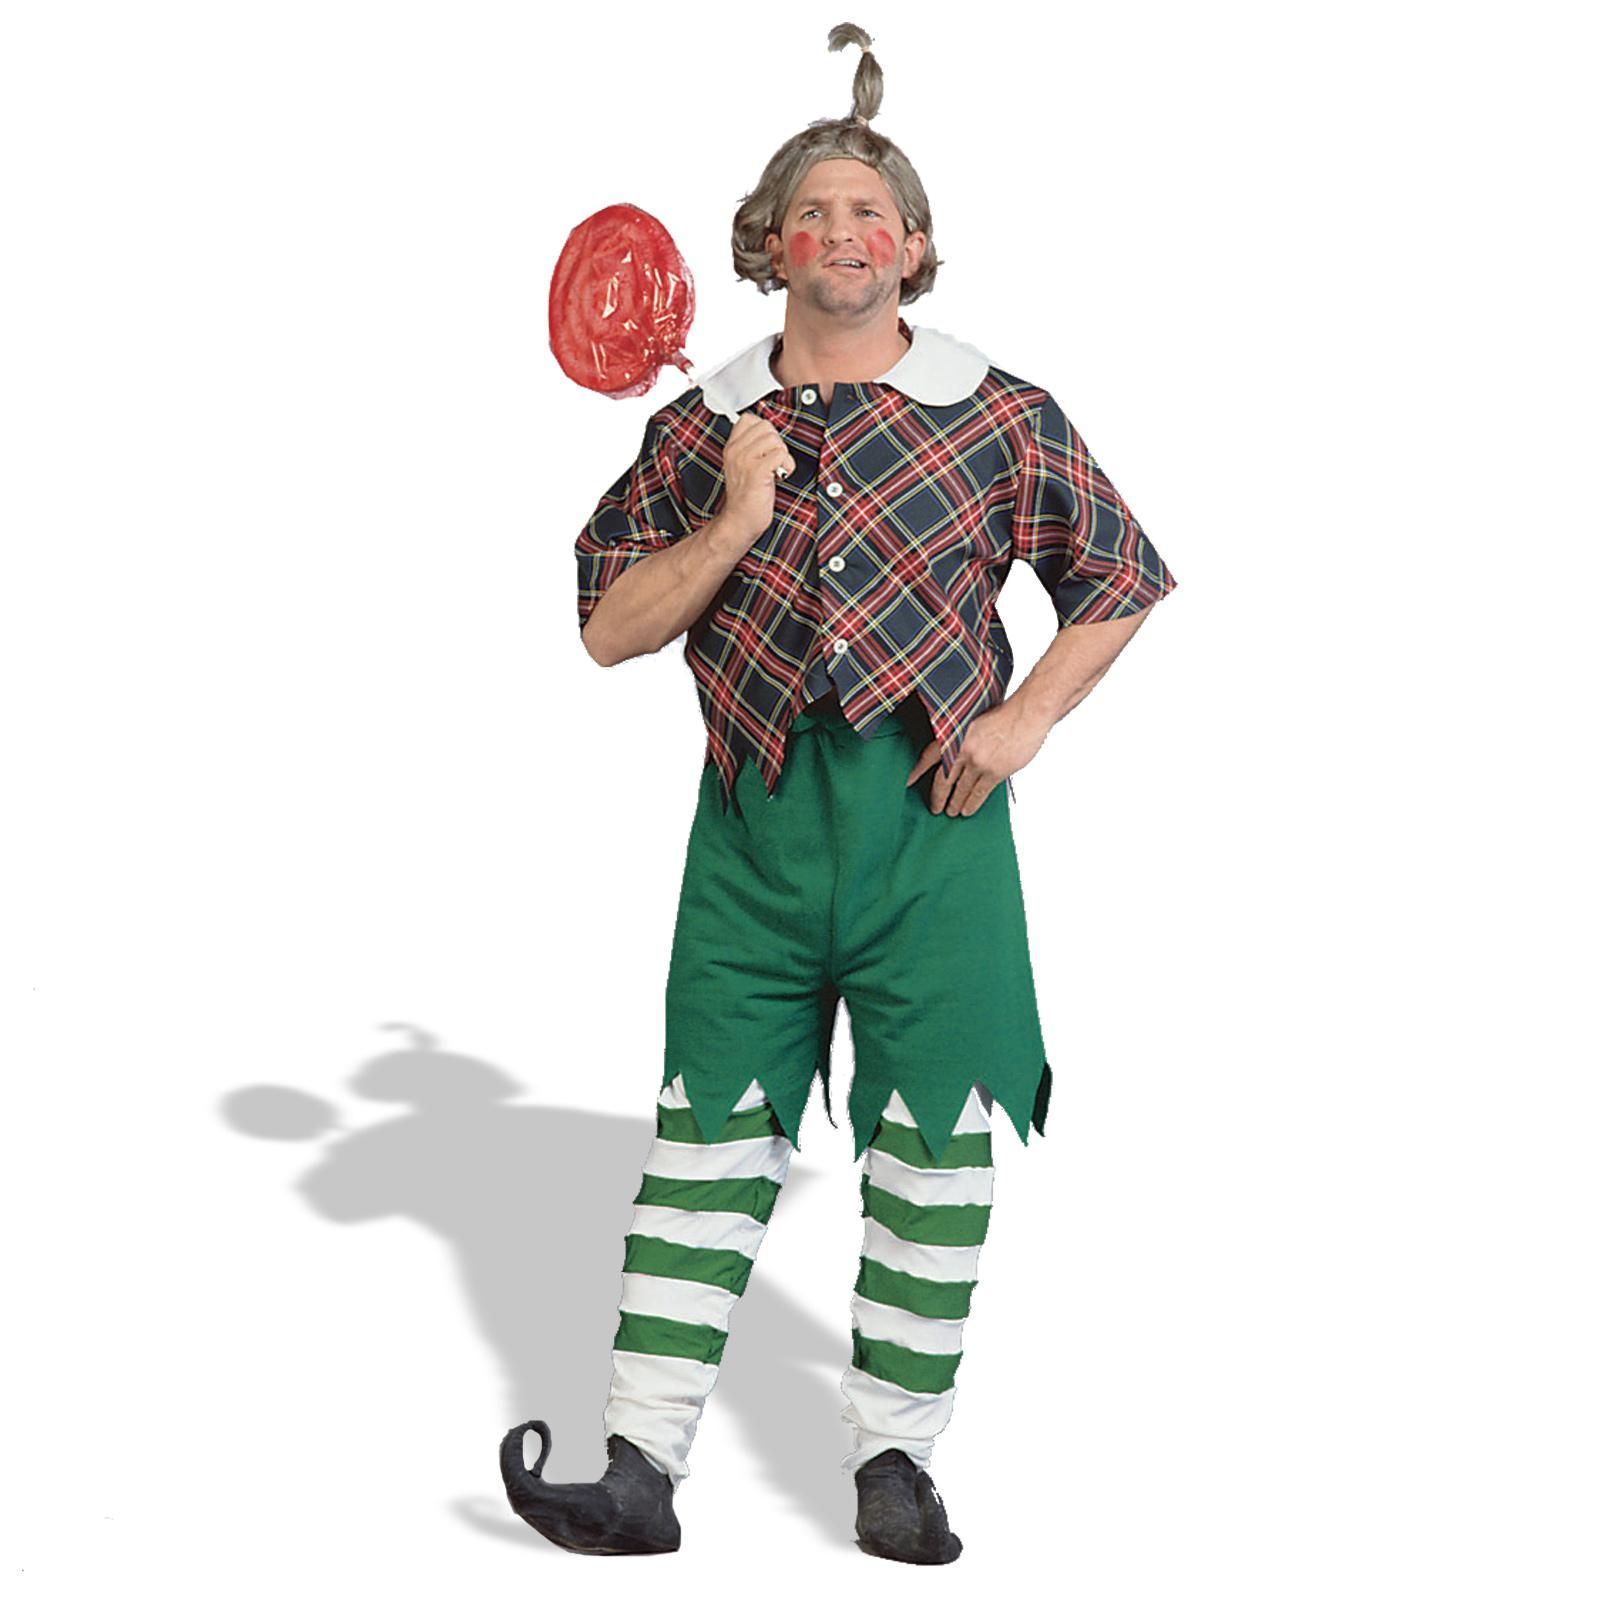 wizard of oz costumes for adults | Wizard of Oz Munchkin Kid Adult ...